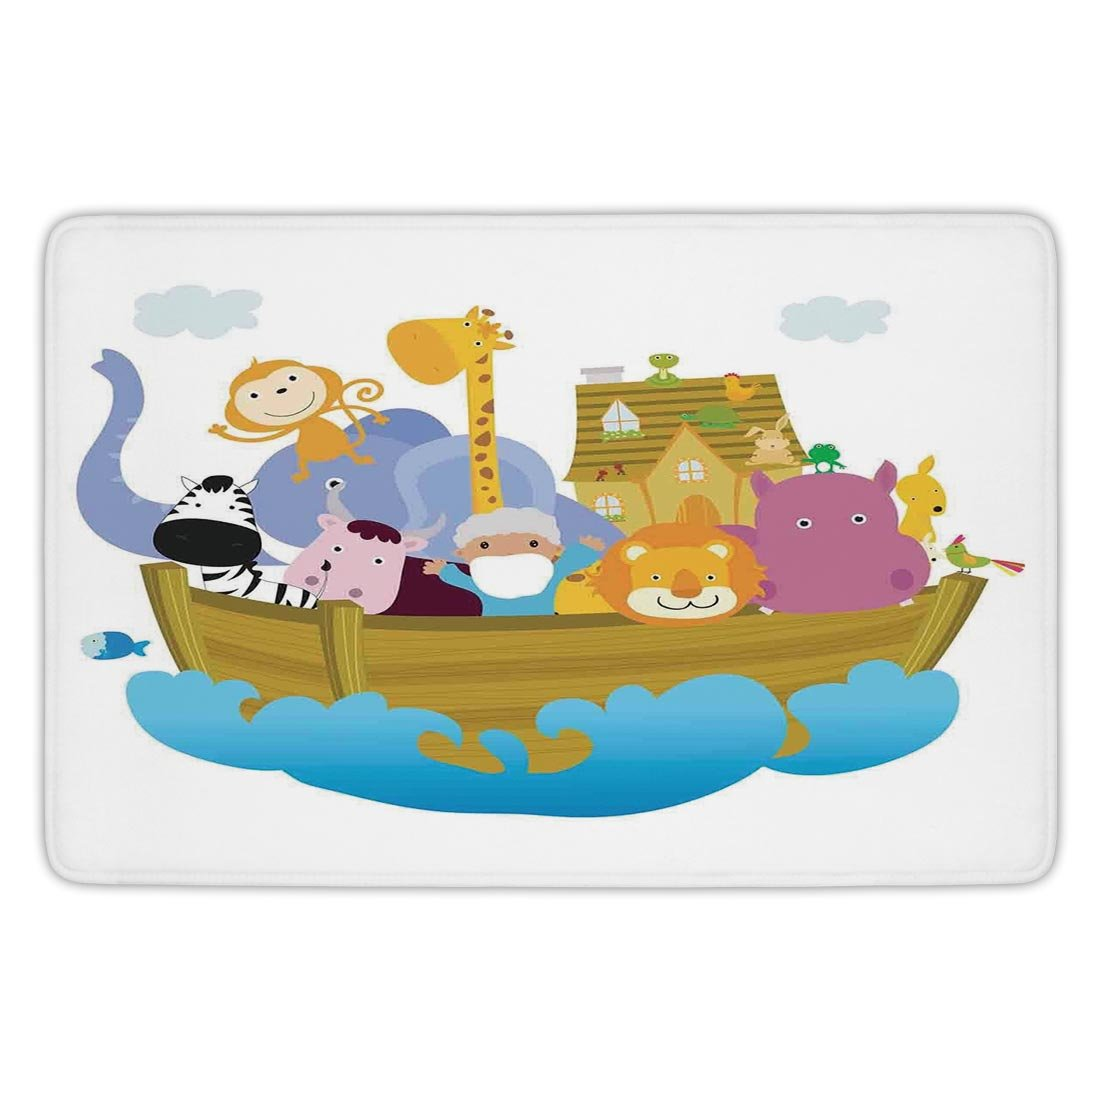 Bathroom Bath Rug Kitchen Floor Mat Carpet,Religious,Religious Story the Ark with Set of Animals in the Boat Journey Faith Cartoon,Multicolor,Flannel Microfiber Non-slip Soft Absorbent